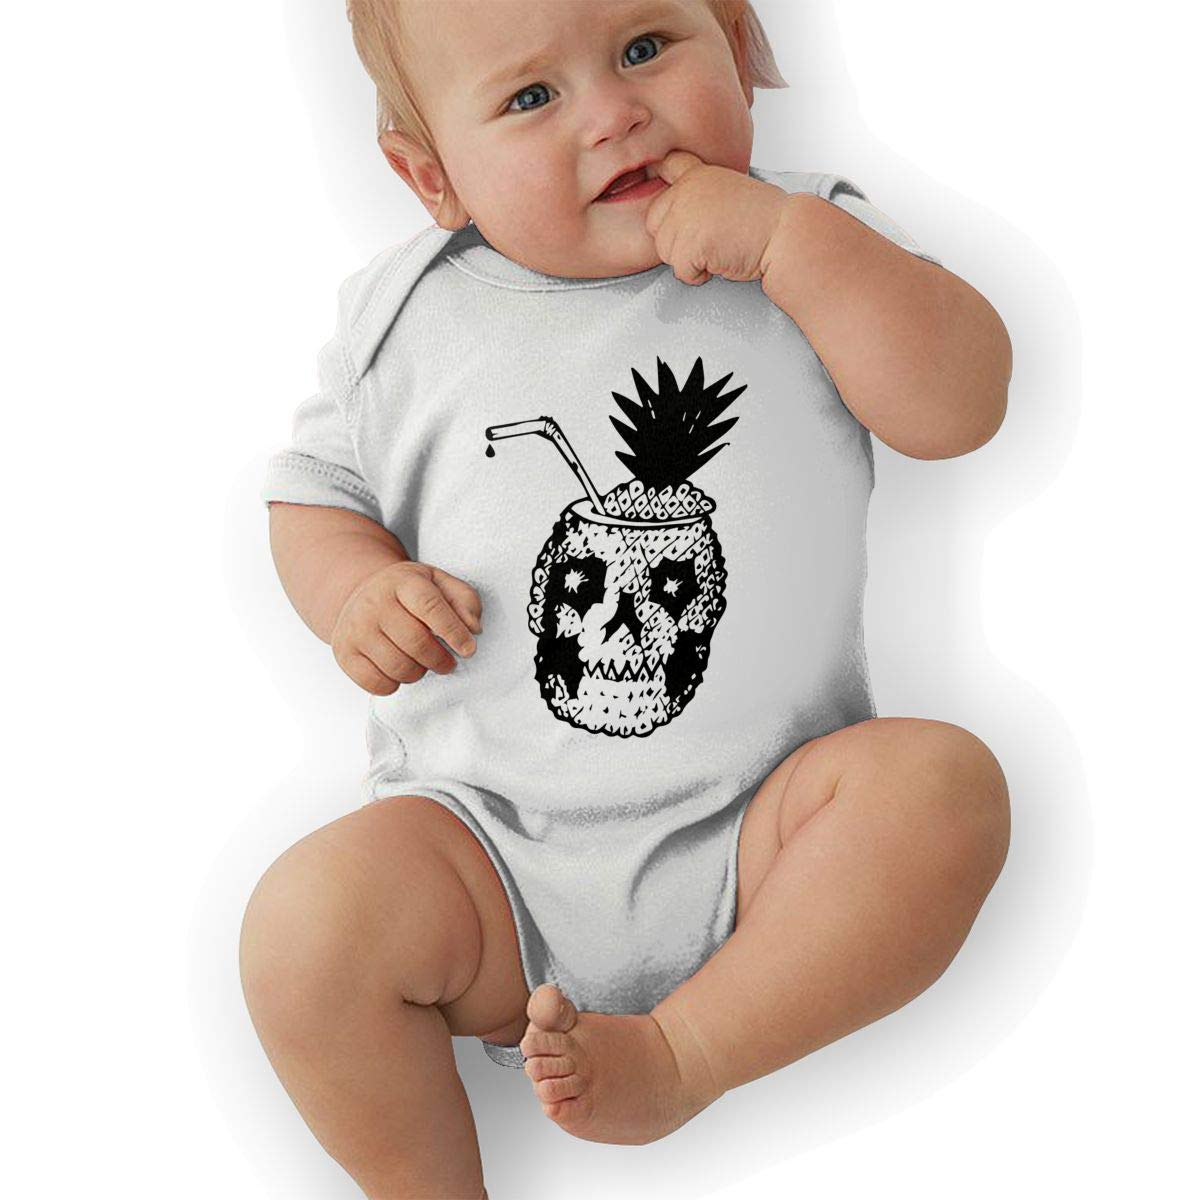 BONLOR A Black Melancholy Skull Pineapple Baby Rompers One Piece Jumpsuits Summer Outfits Clothes